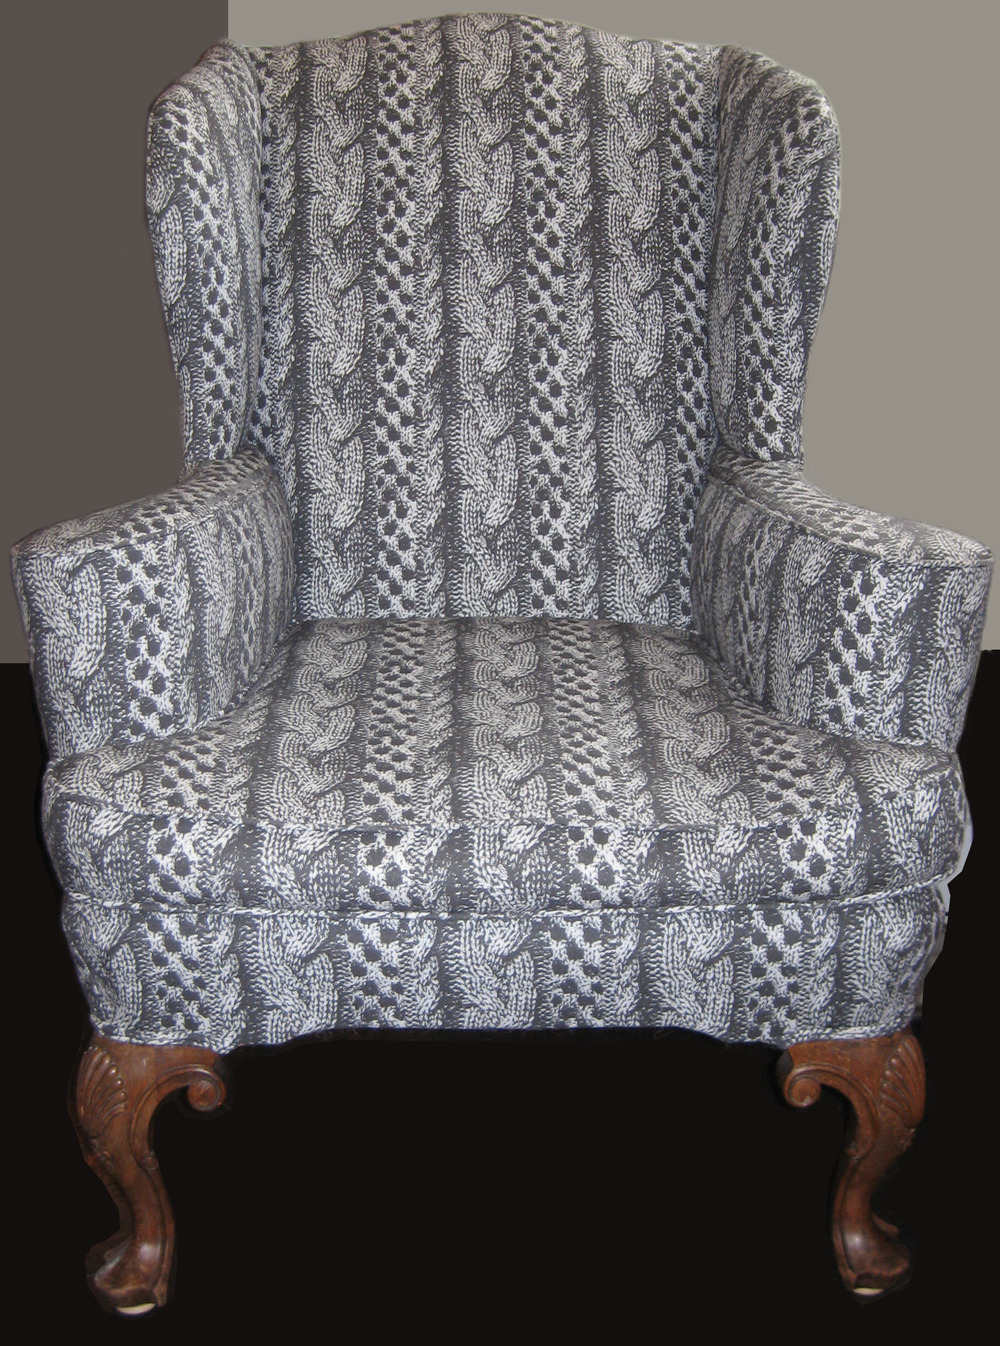 Knitted chair.jpg